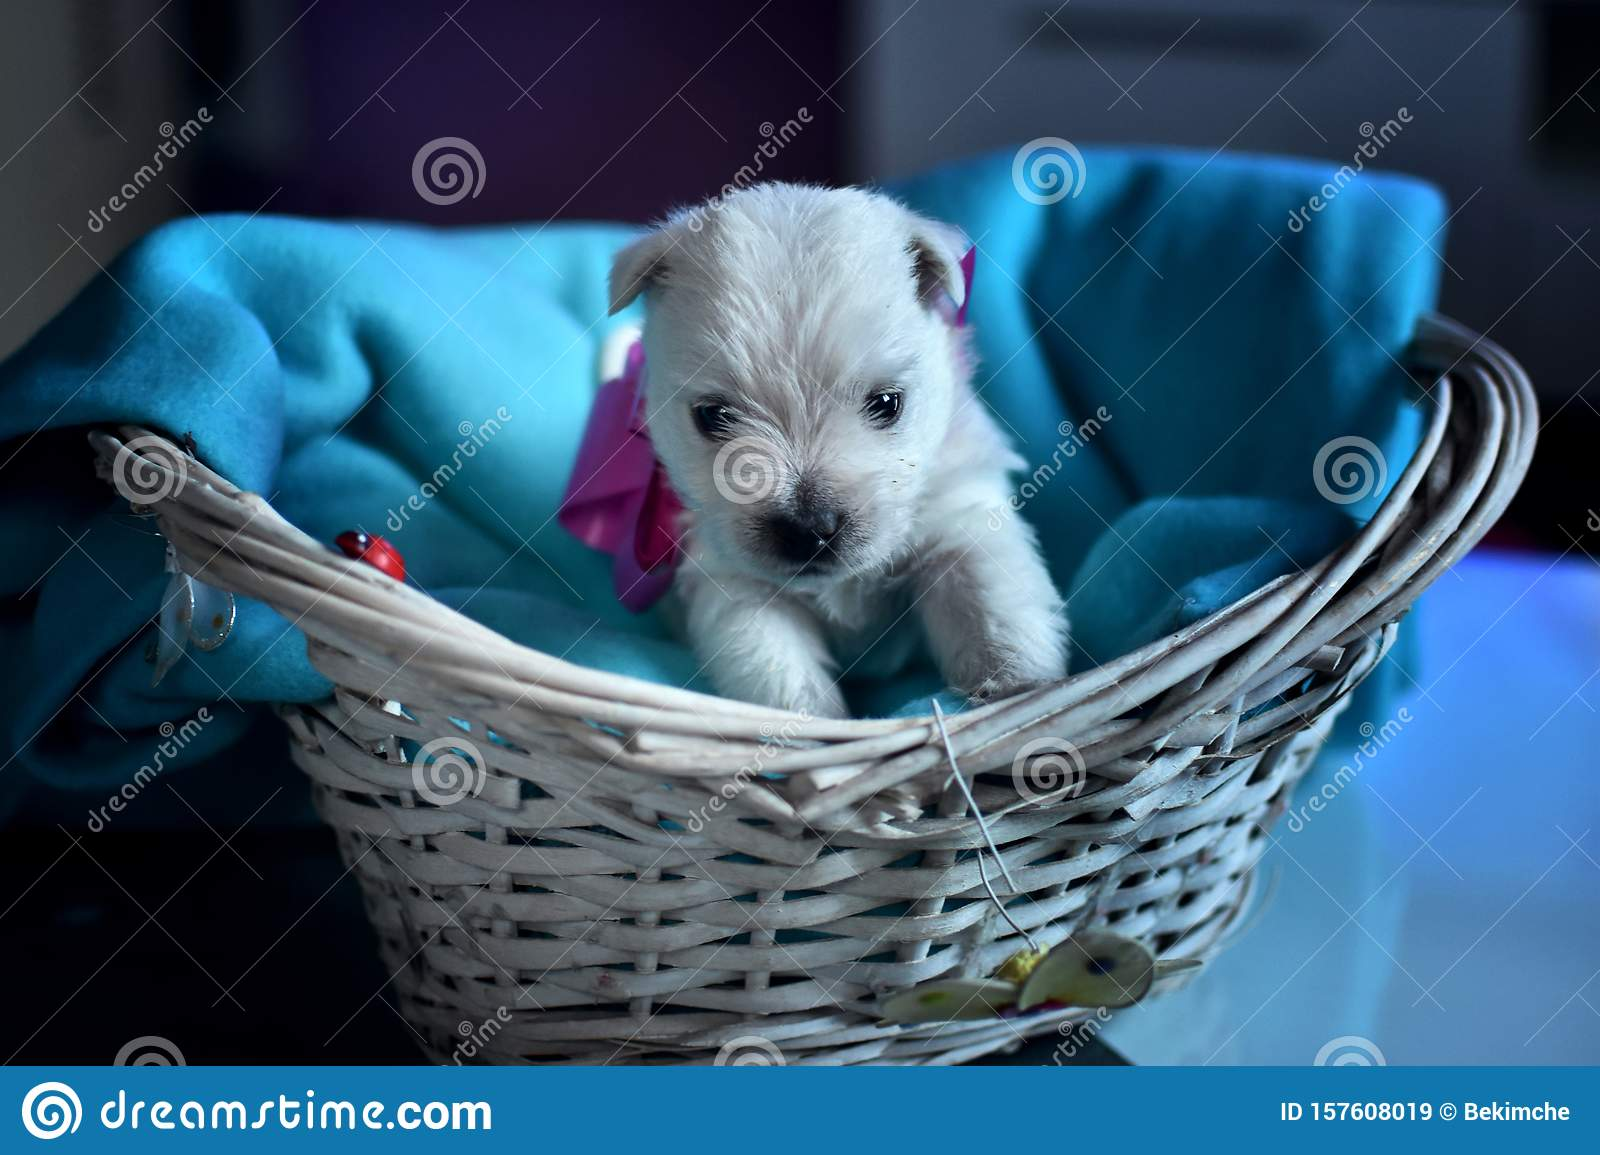 West Highland White Terrier Westie Puppies Stock Image Image Of Puppy Terrier 157608019